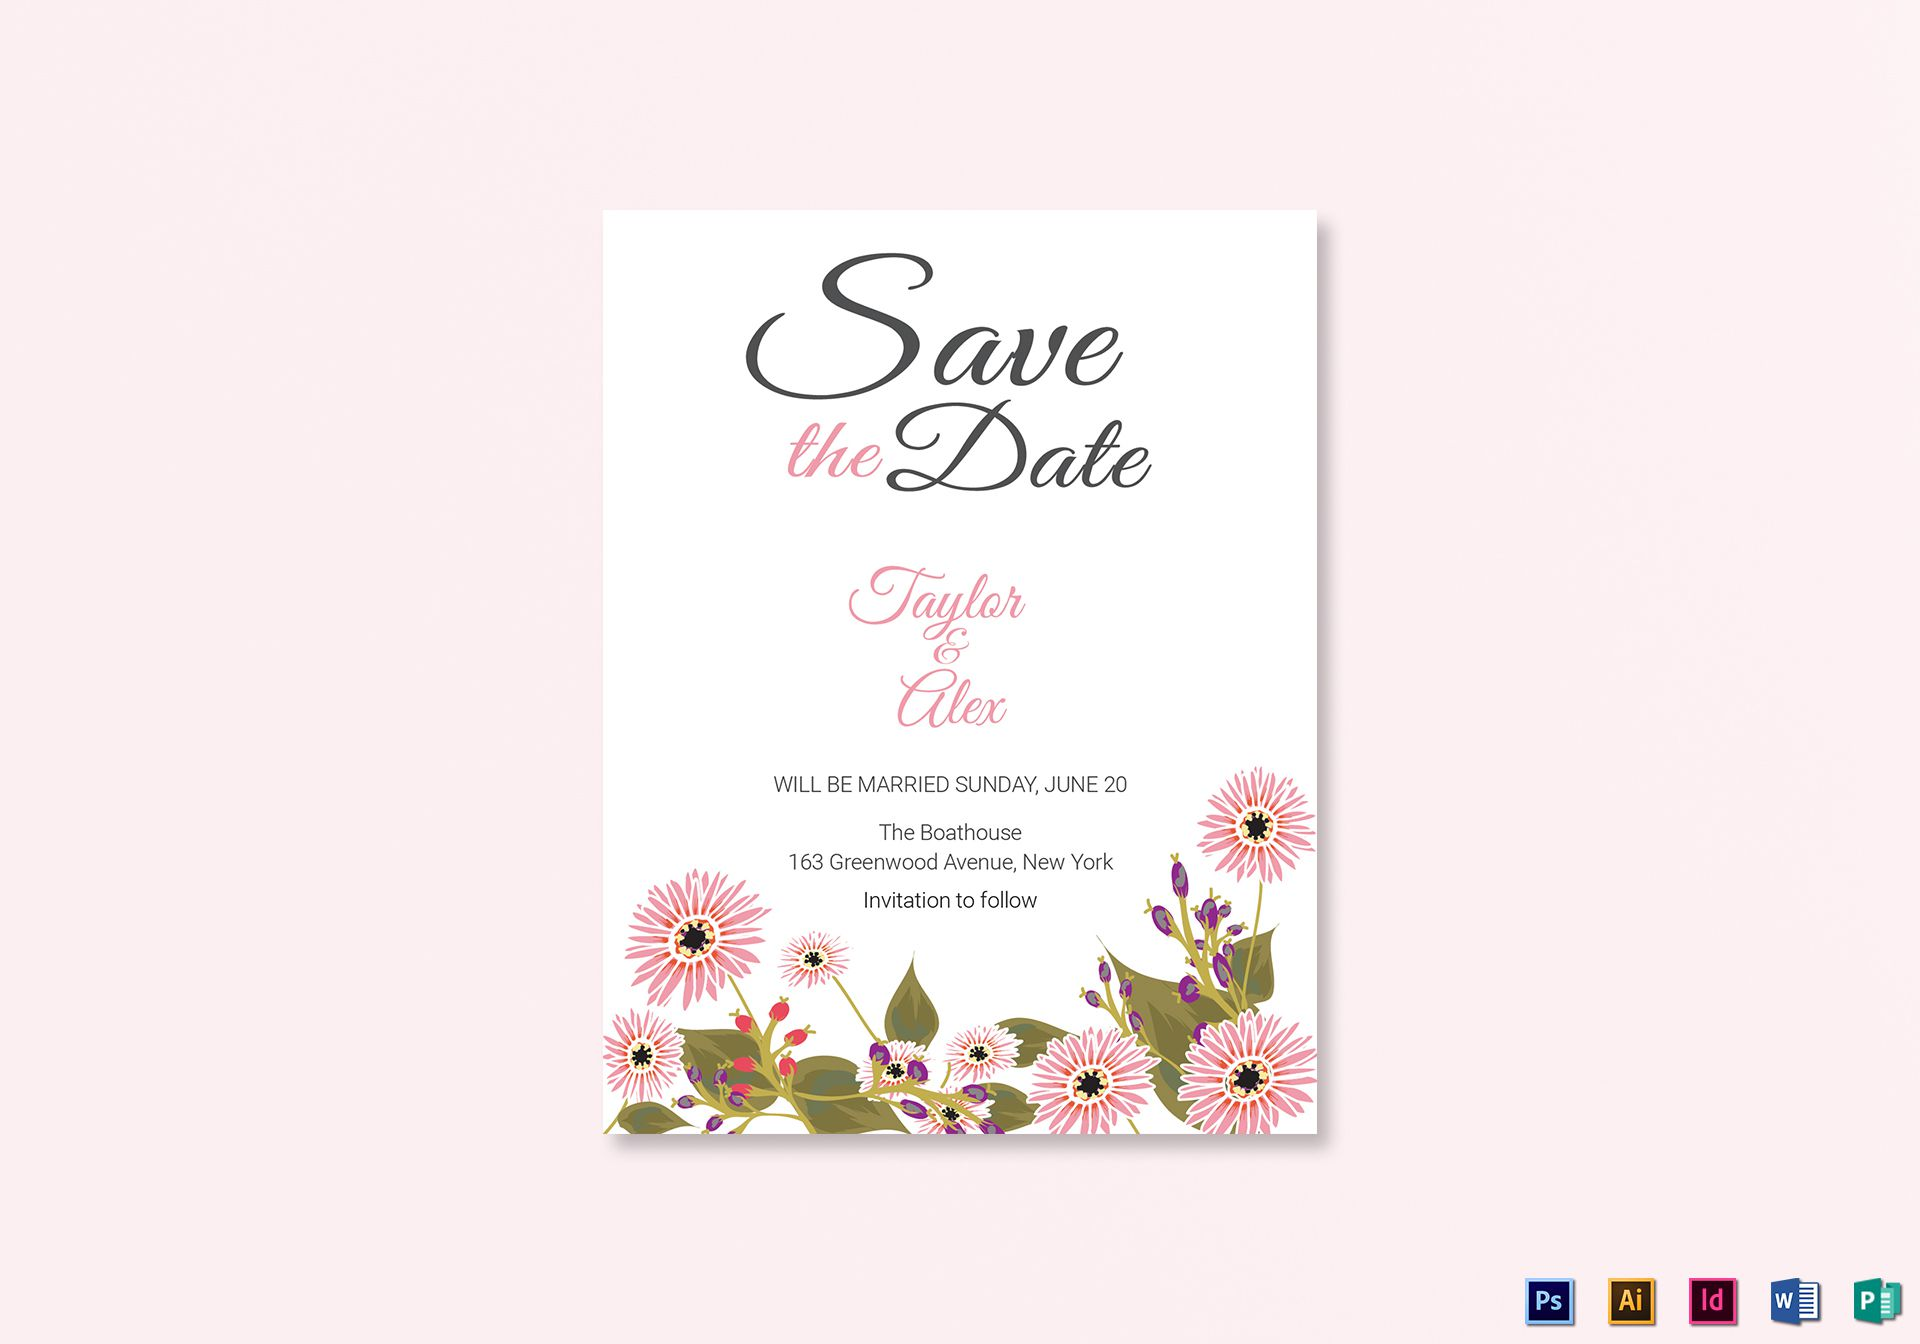 007 Fantastic Save The Date Word Template Photo  Free Birthday For Microsoft Postcard FlyerFull